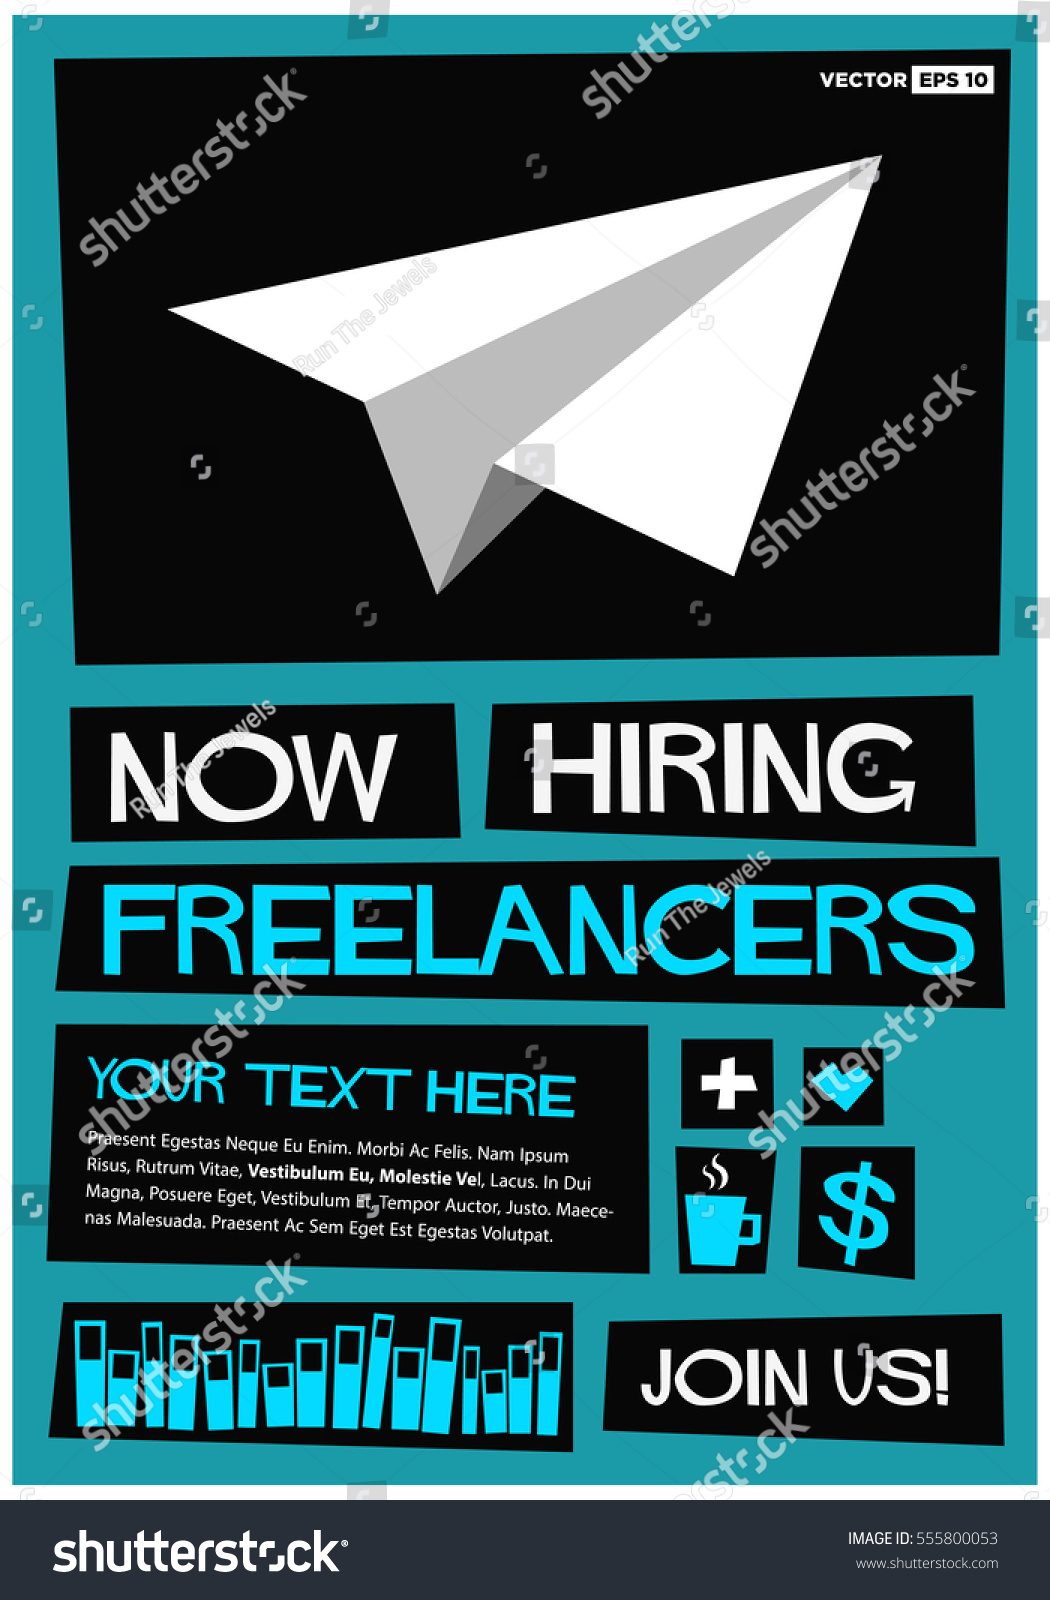 where to hire freelancers